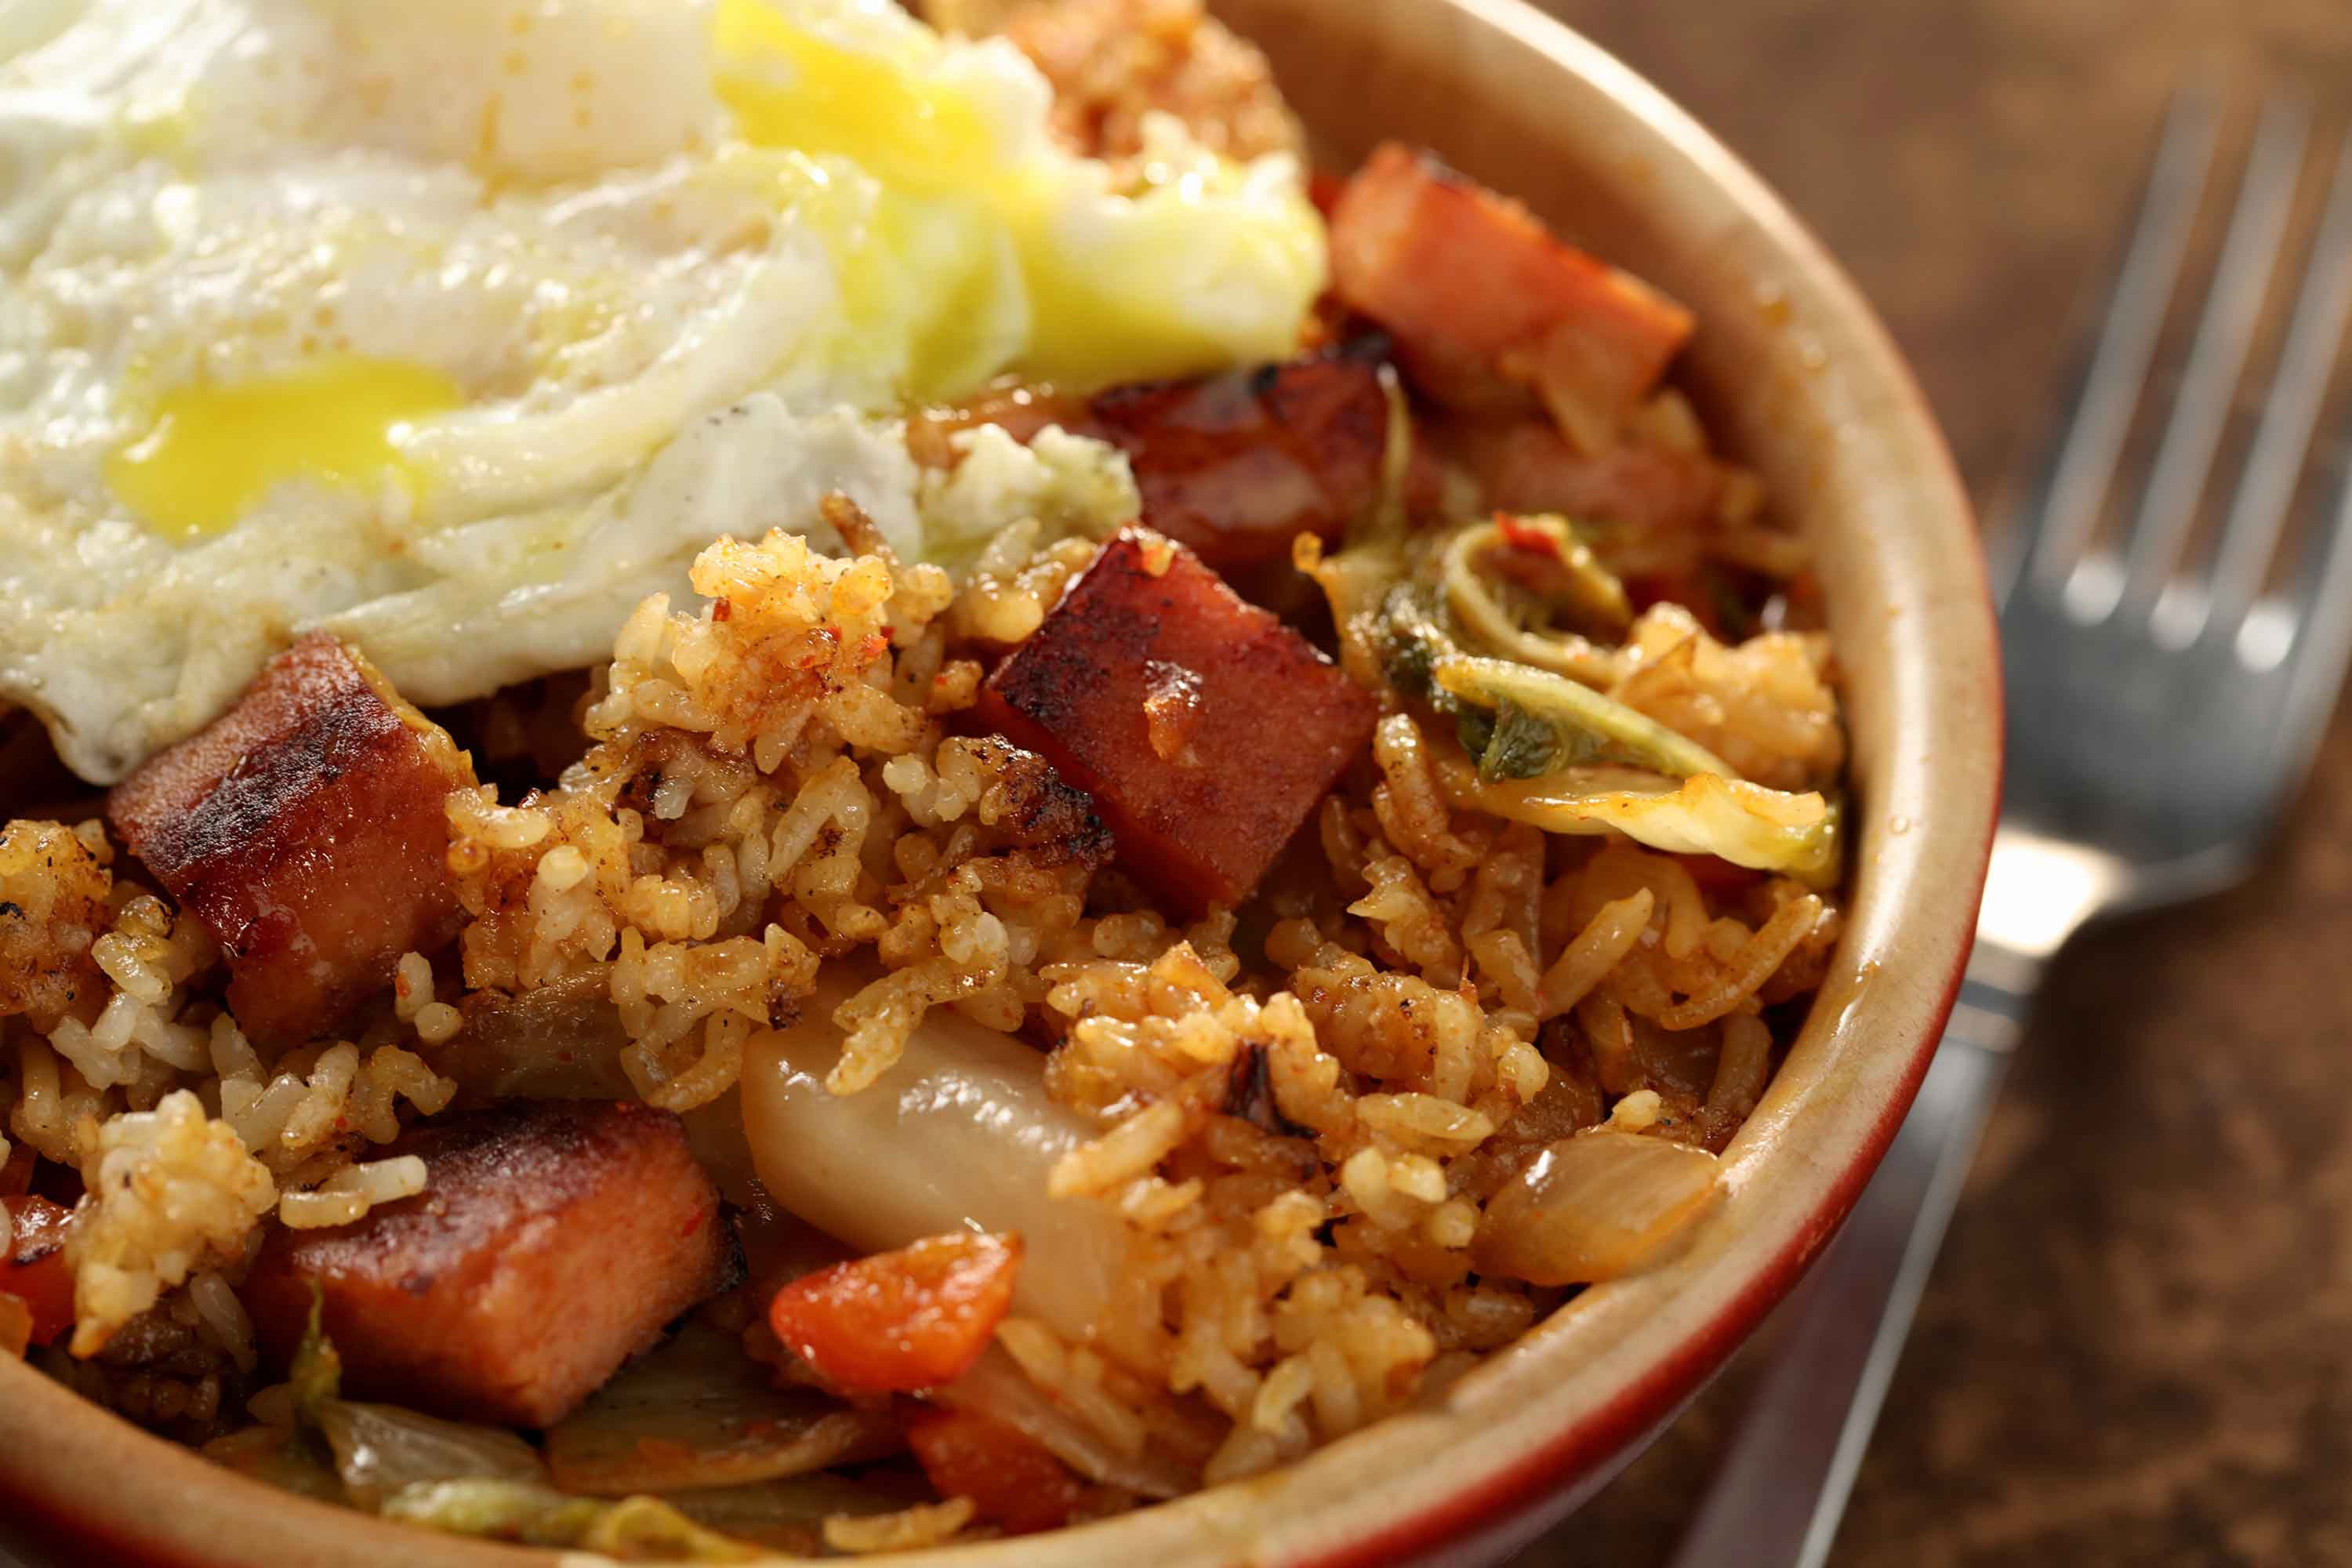 Spam is first cooked with maple syrup for a carmelized glaze that balances the saltiness, tehn tossed with kimchee and a spicy sauce for an up-all-night-and-we're-hungry fried rice. (Michael Tercha/Chicago Tribune/TNS)